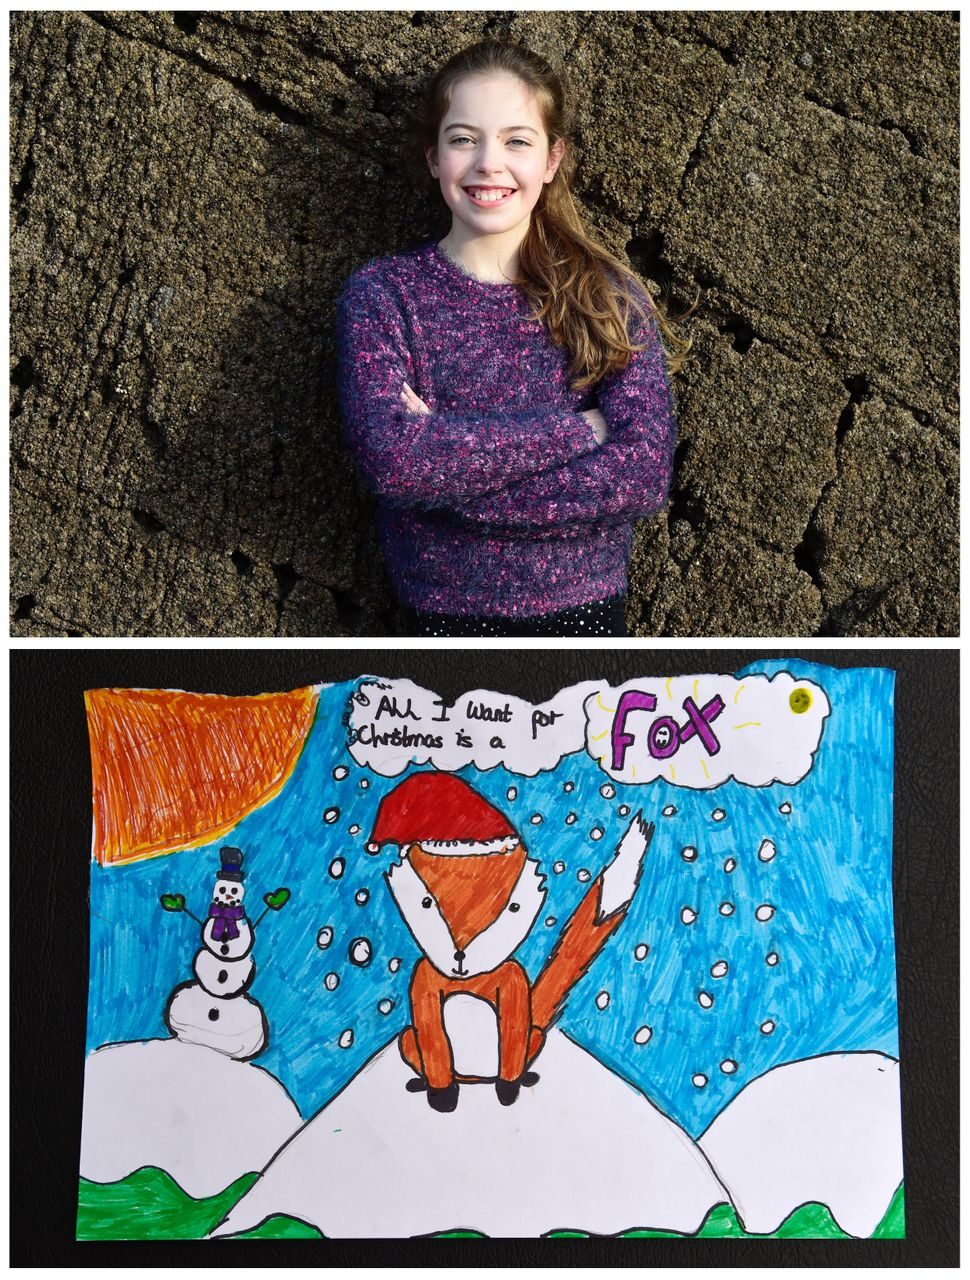 <strong>Georgie Kidd, 10, from Tenby, Wales:</strong> Georgie wants a fox.